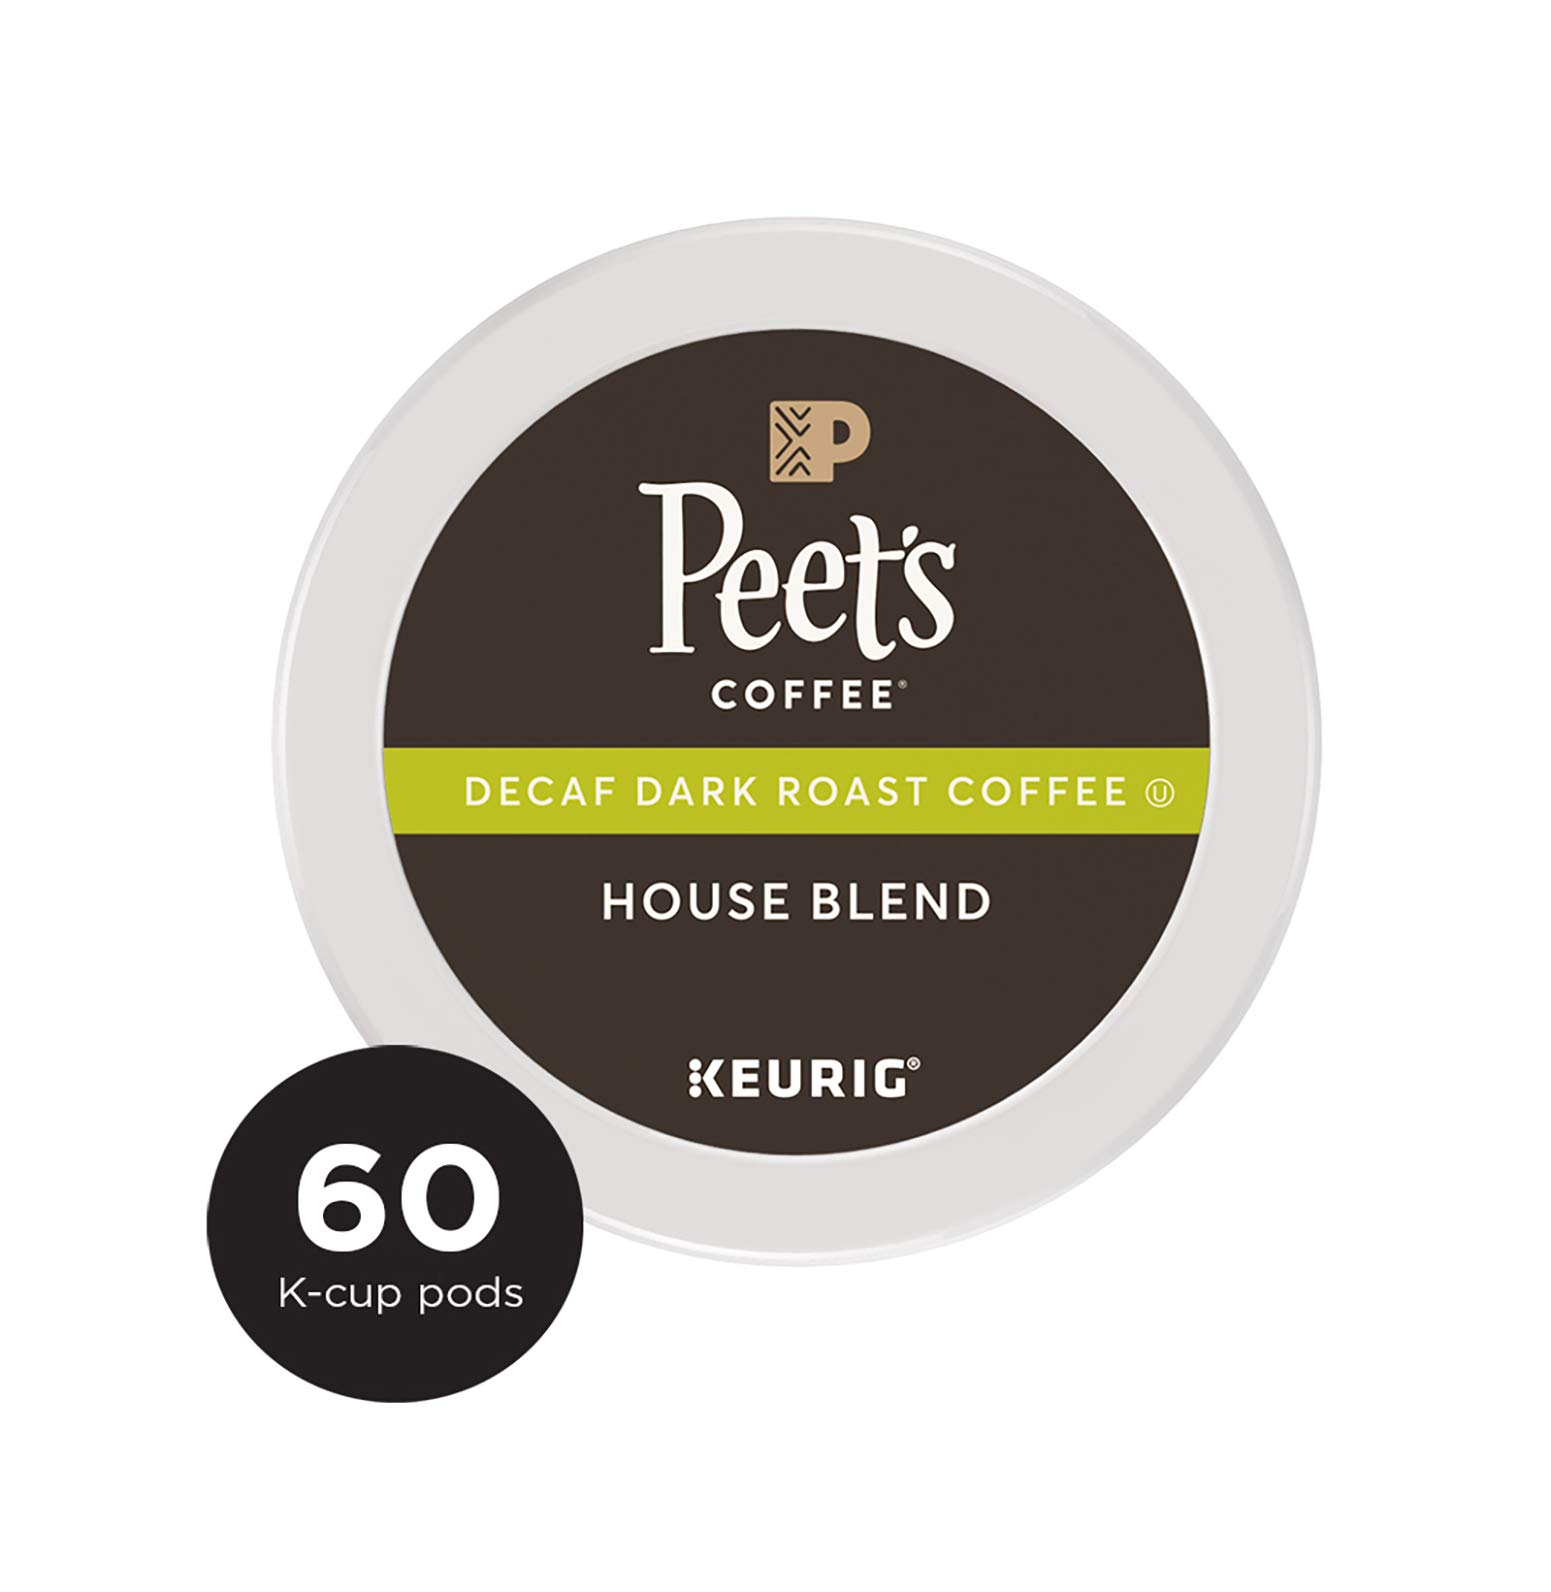 Peet's Coffee K-Cups, Decaf Dark Roast House Blend, 10 Count Pods (Pack of 6) Single Cup Coffee Pods, Dark Roast Coffee with Bright Balanced Flavors, Decaffeinated, for Keurig K-Cup Brewers by Peet's Coffee